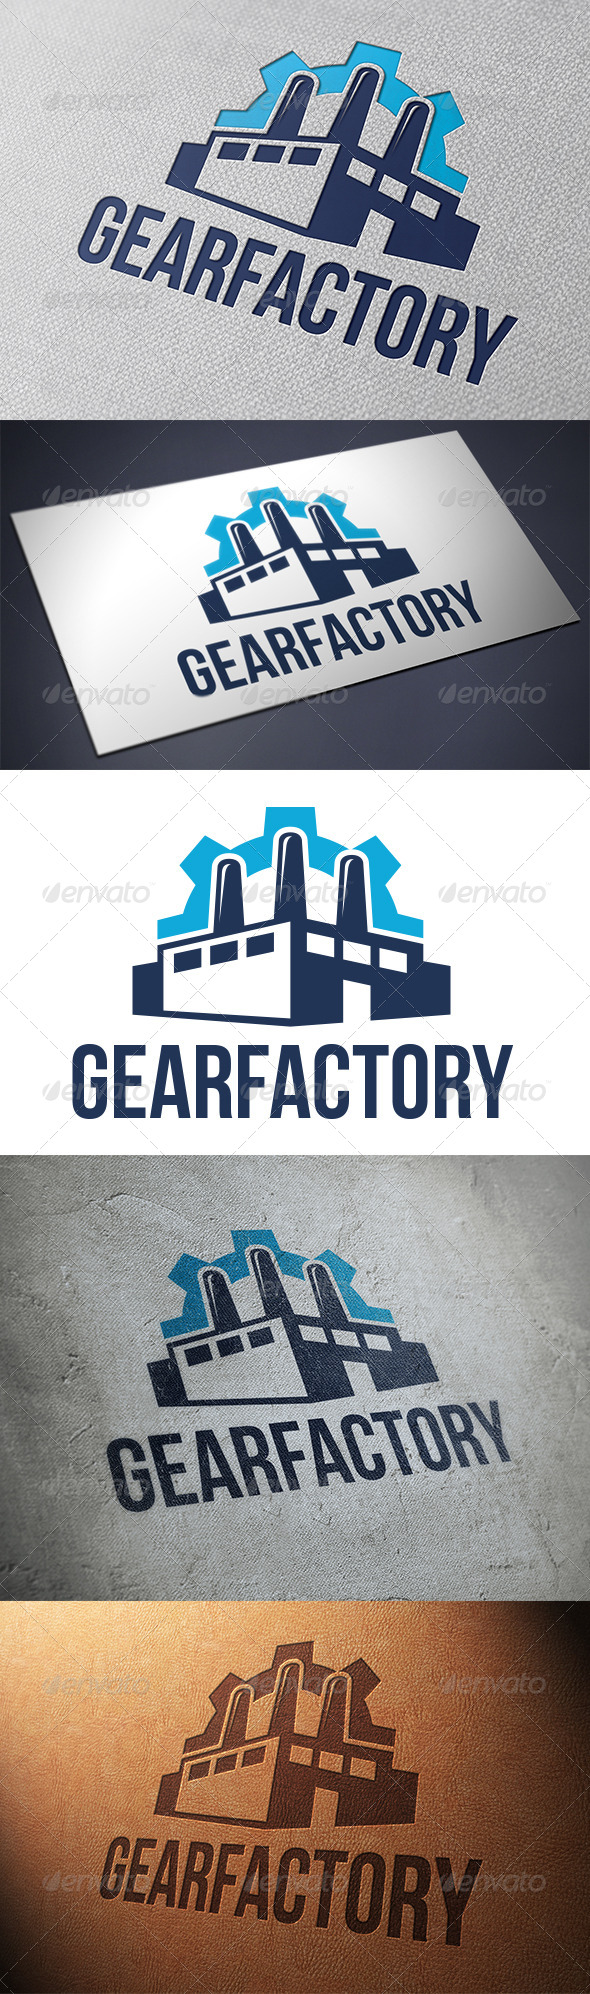 Gear Factory Logo Template - Buildings Logo Templates